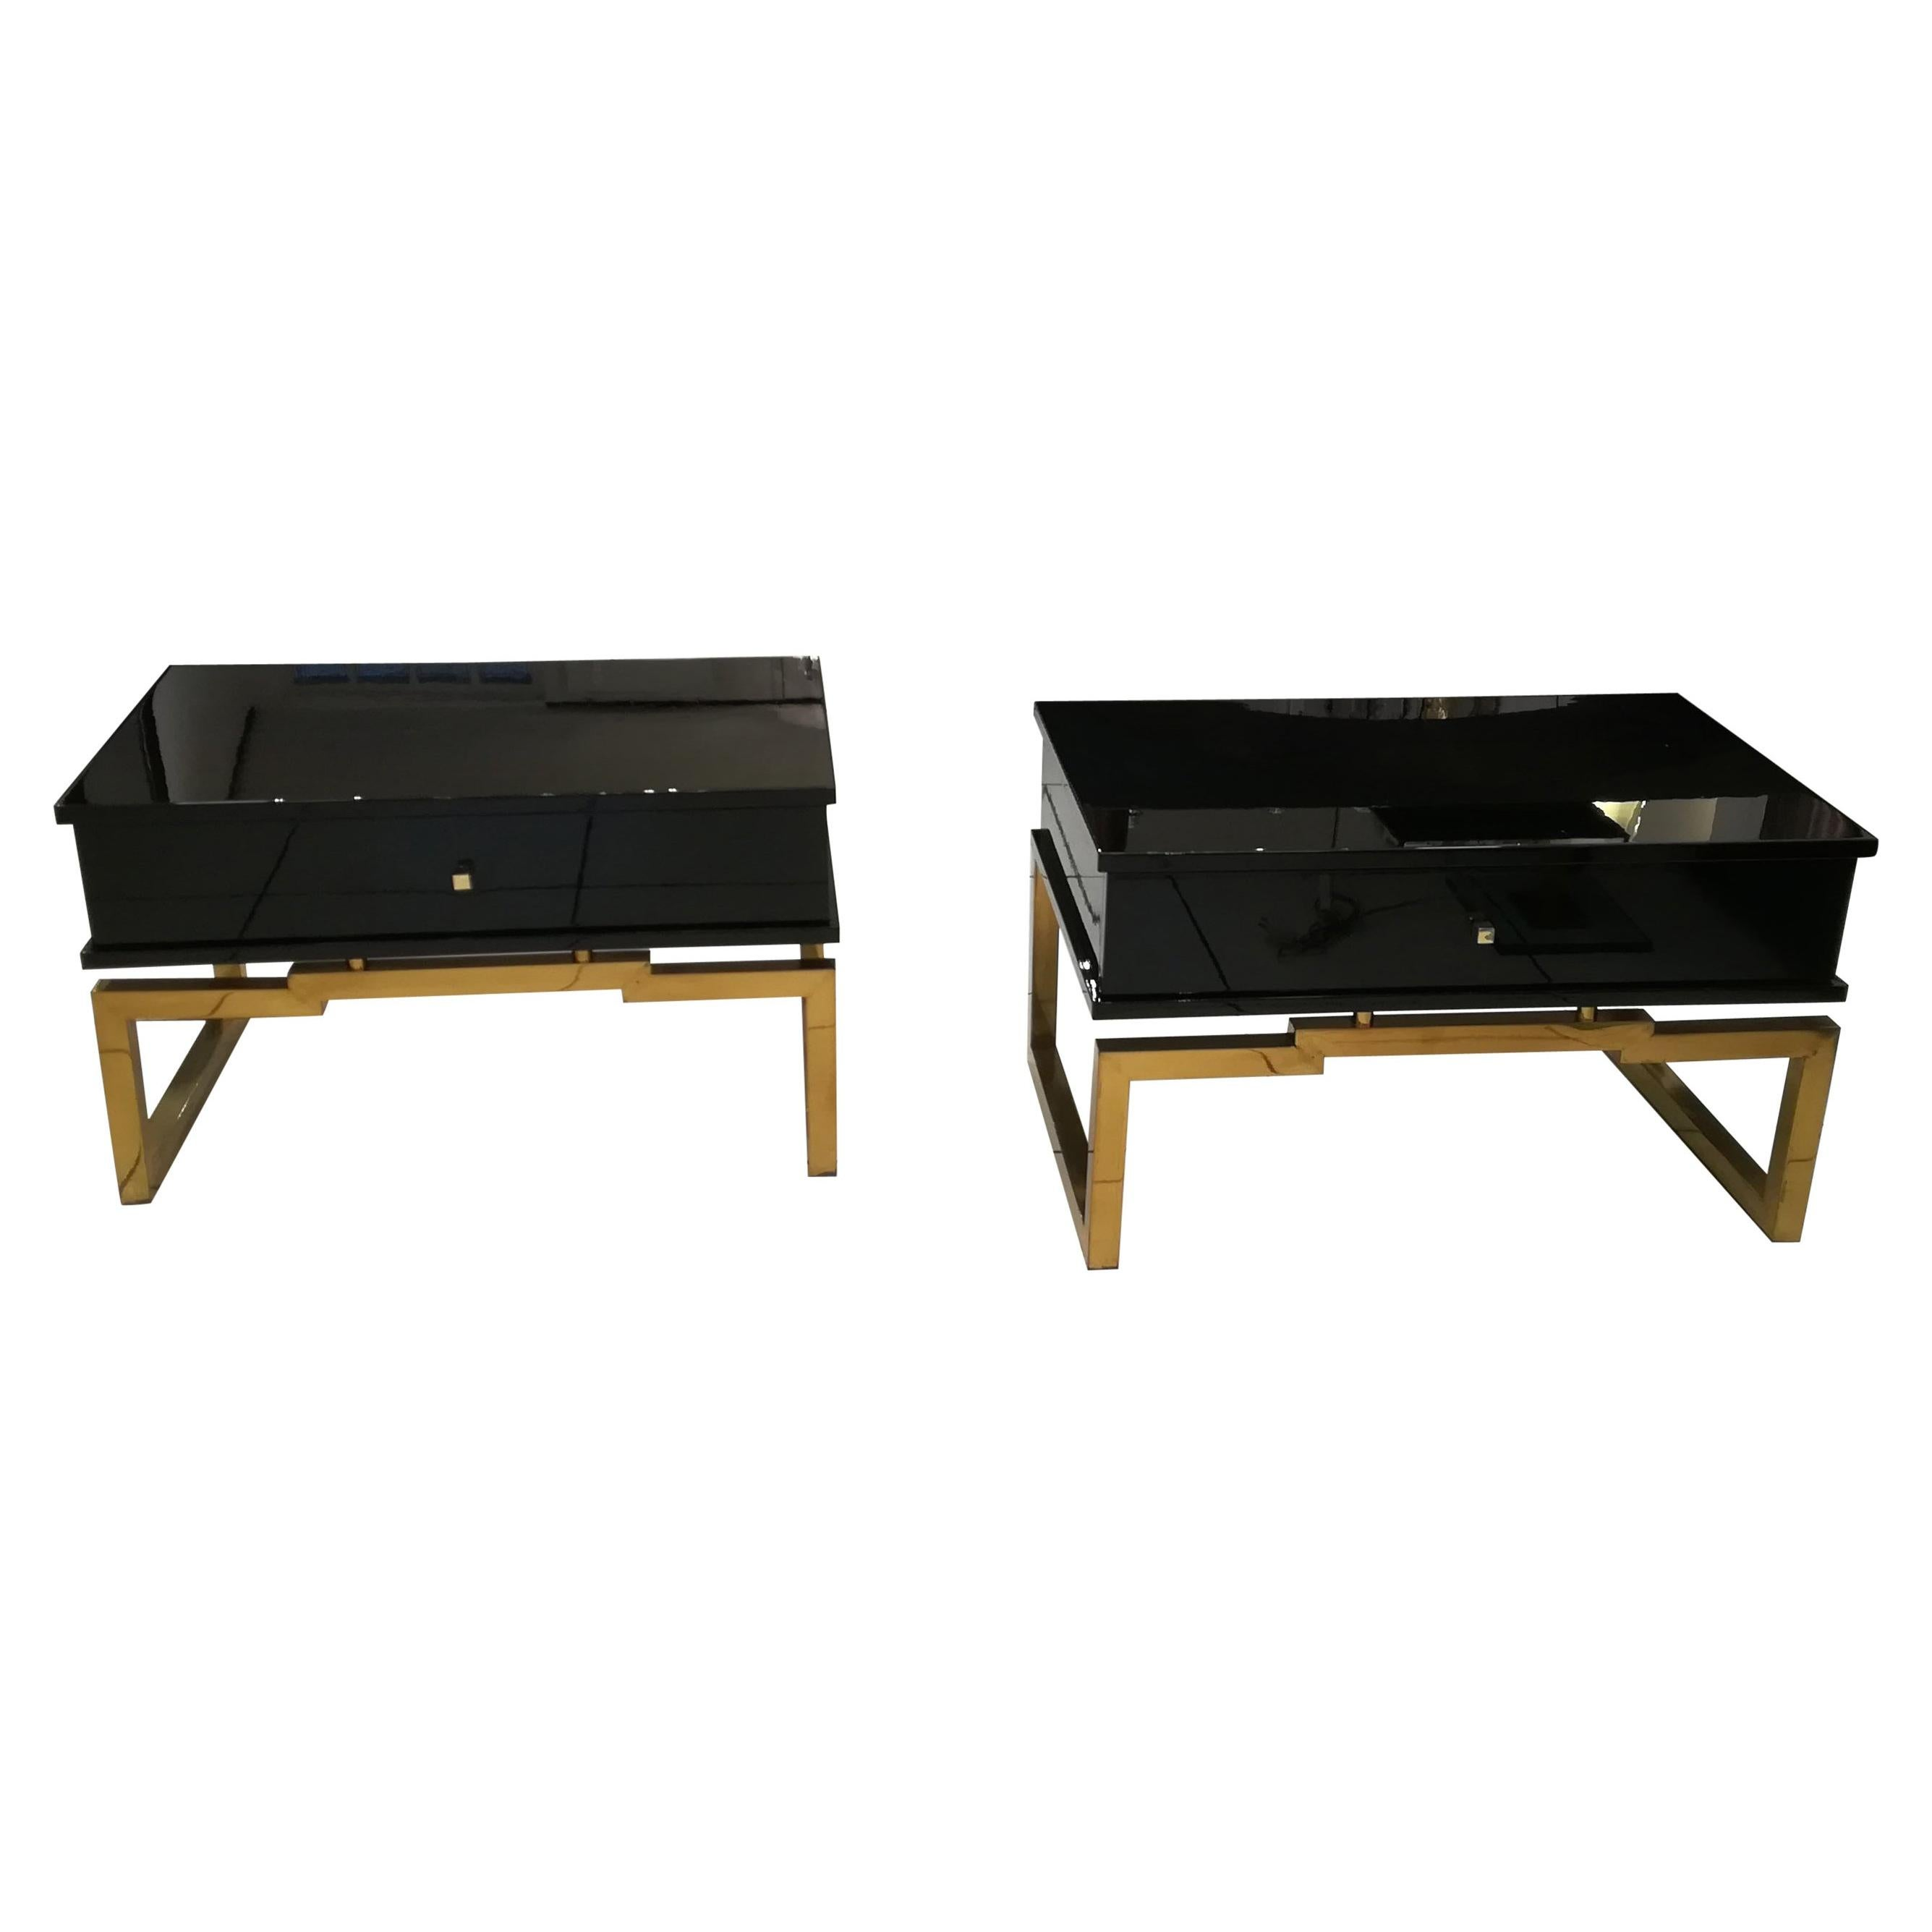 Pair of Bedsides or End Tables in Lacquered Wood, circa 1970